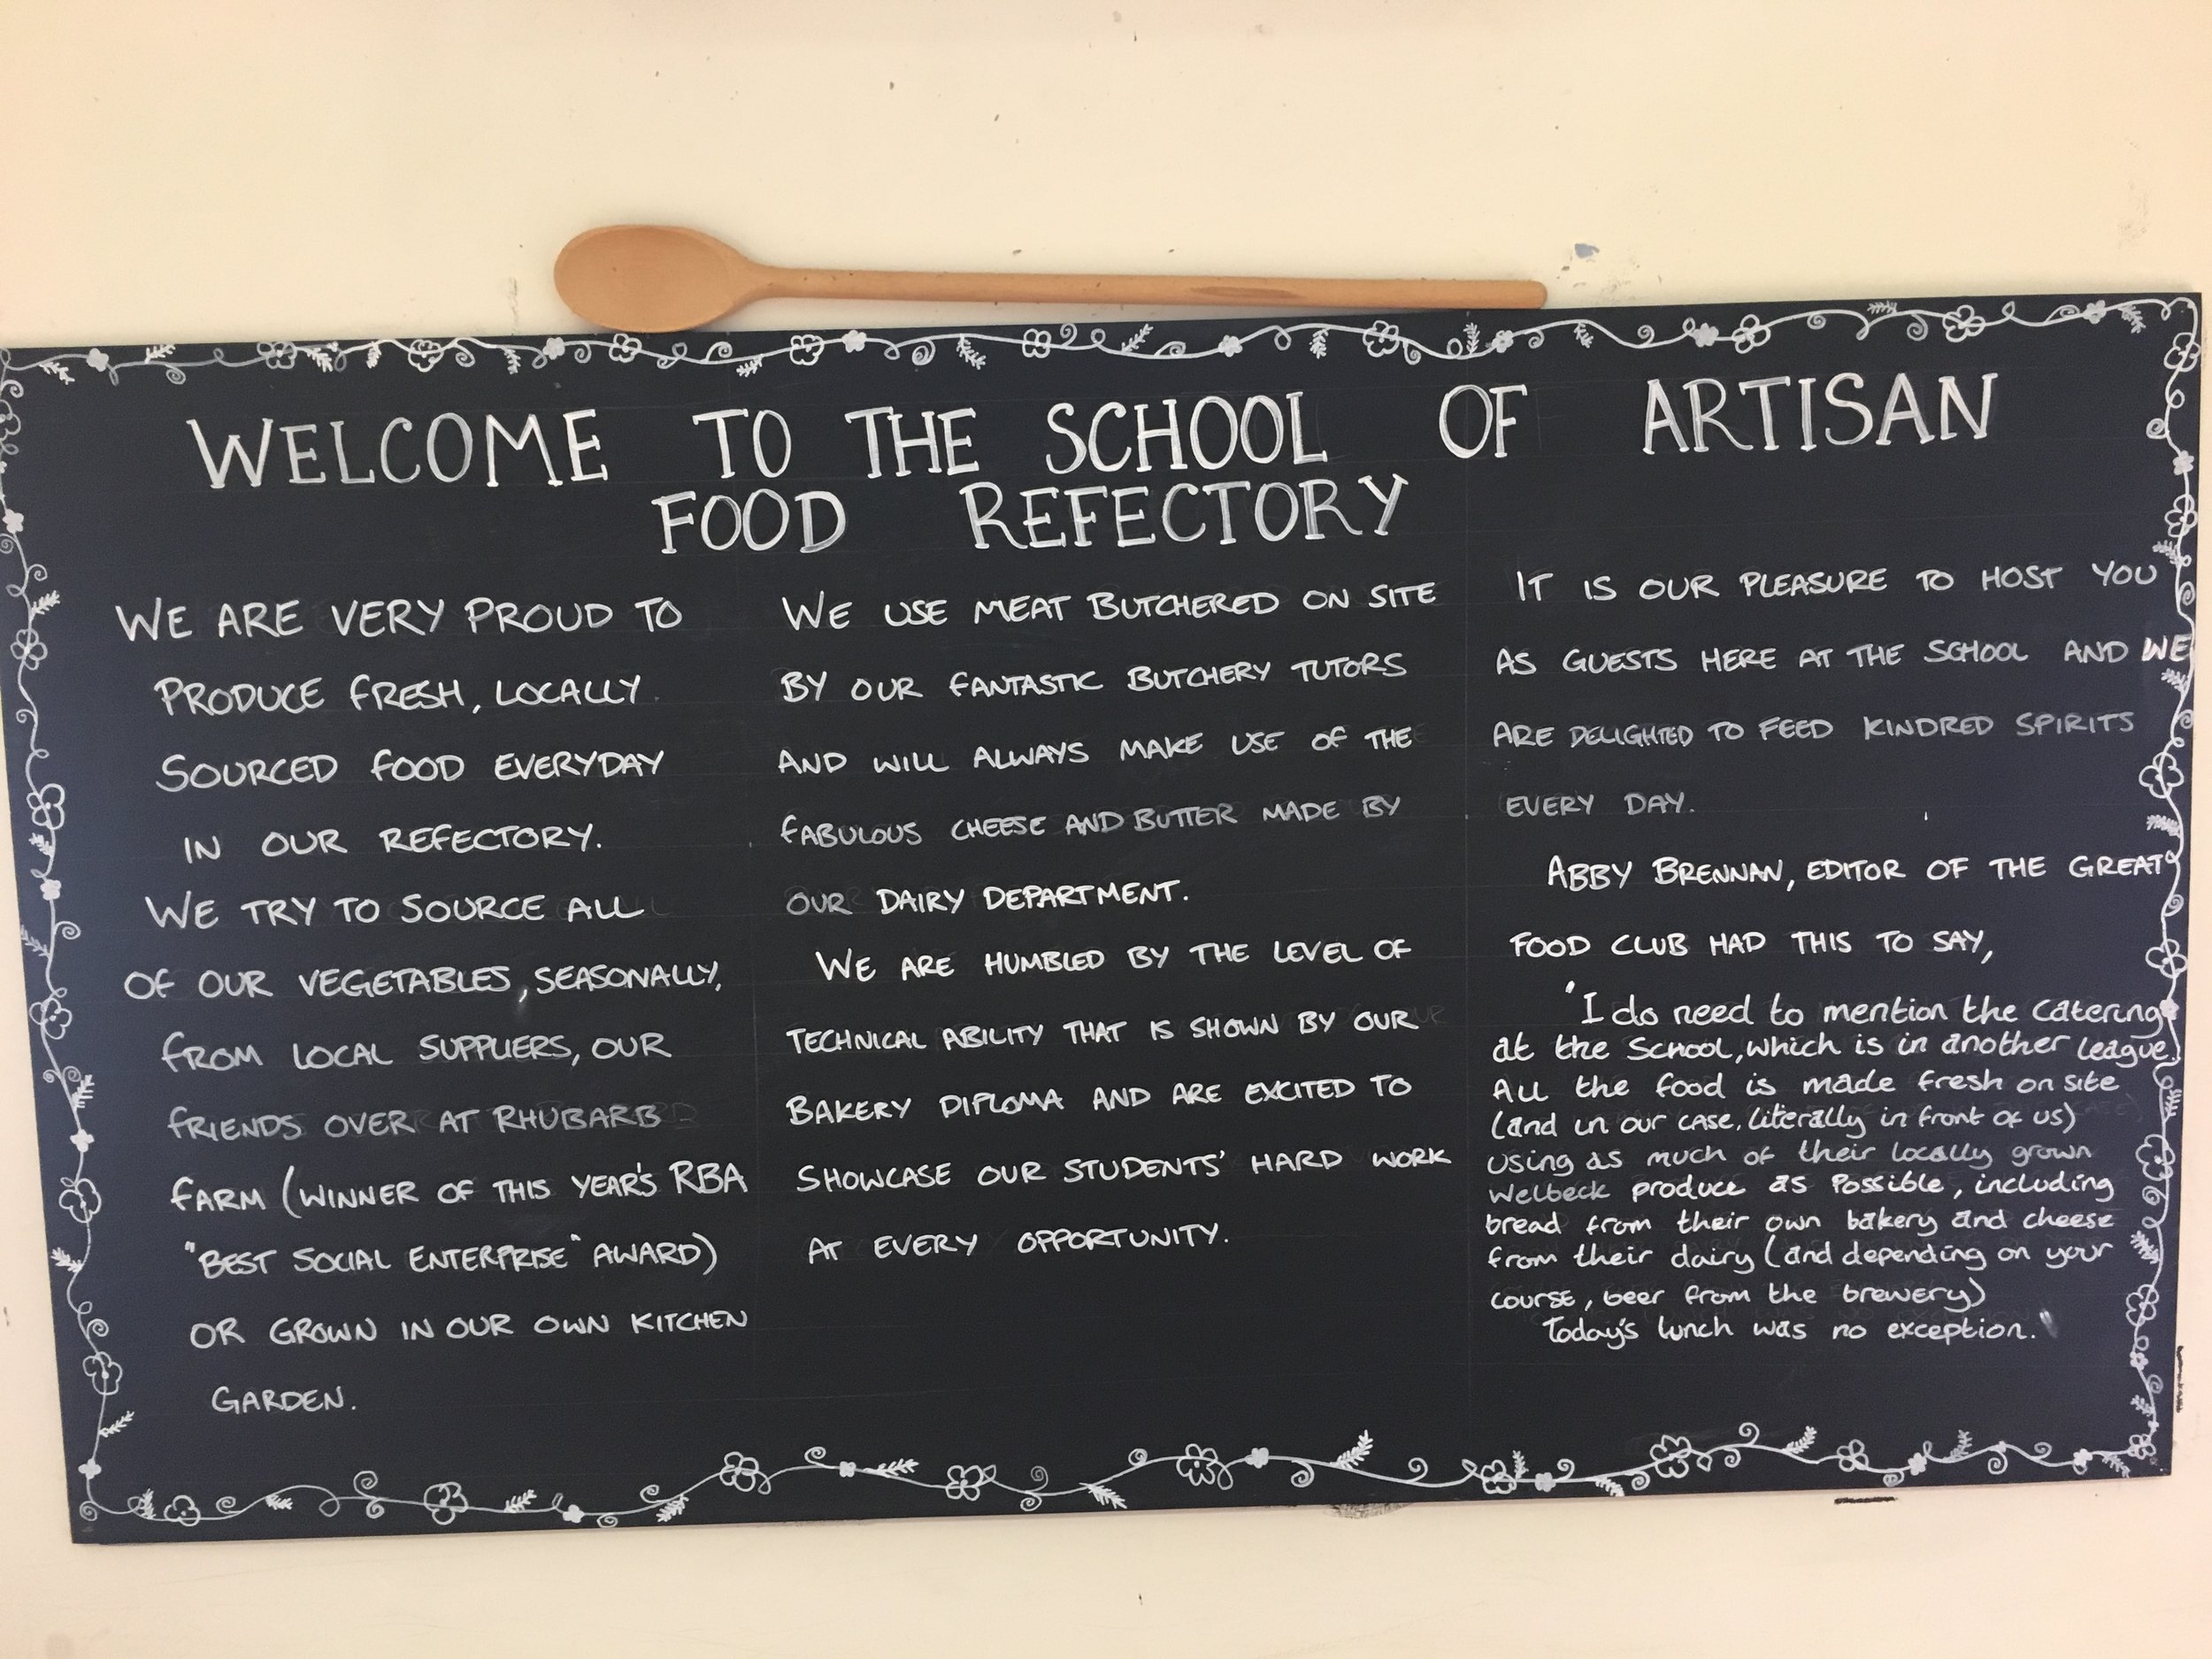 All students and staff at the School of Artisan Food eat together in the refectory